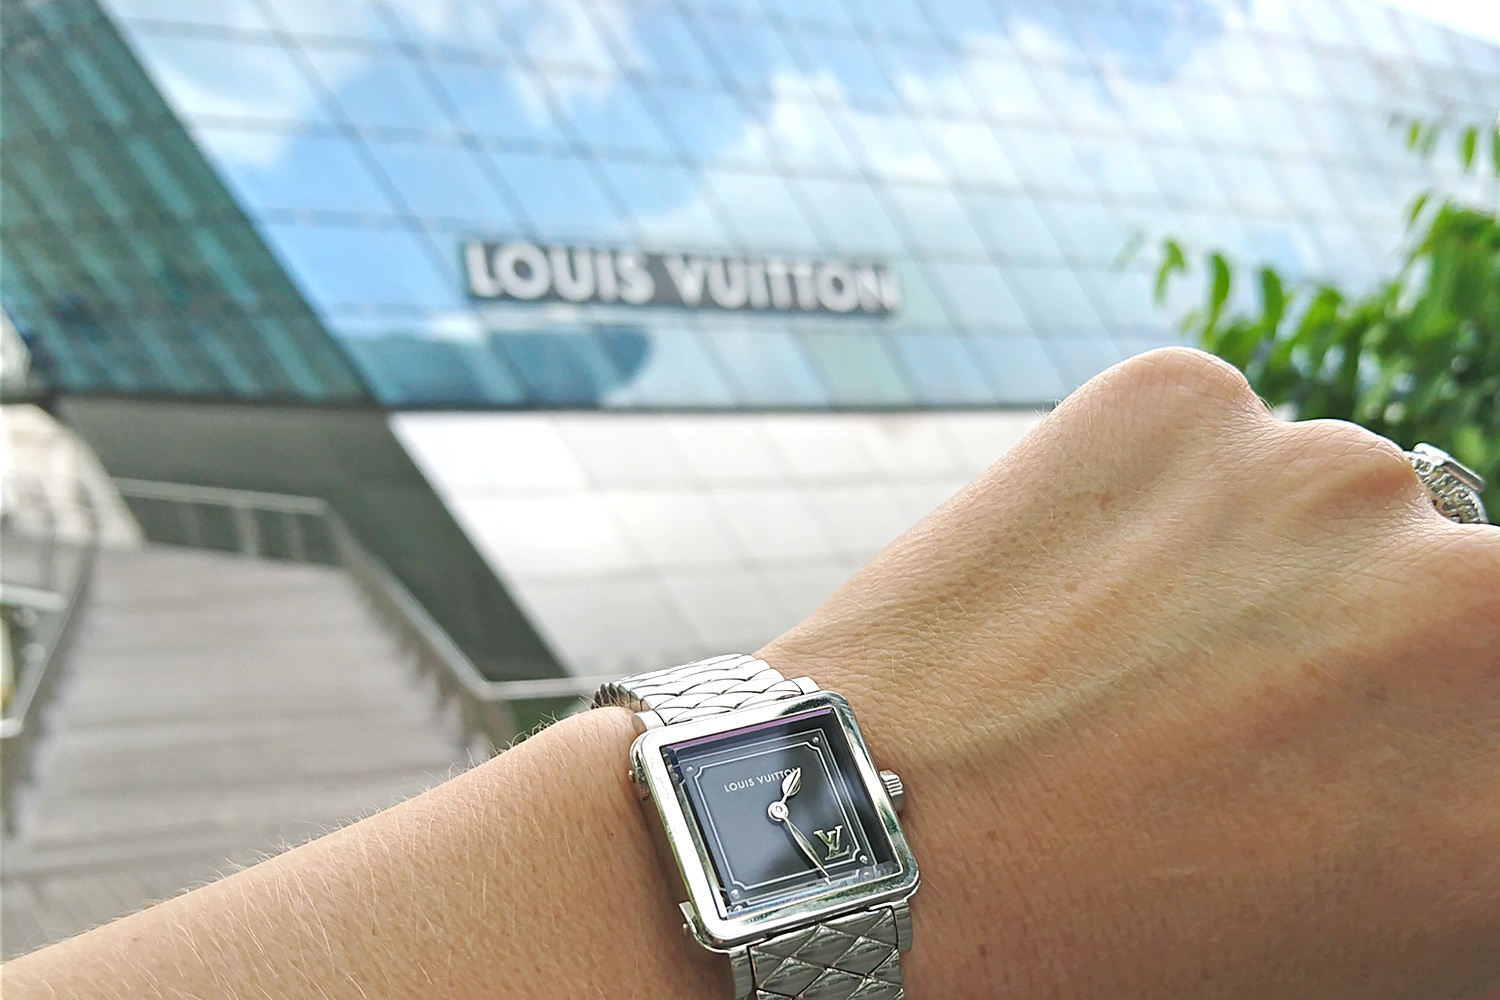 louis-vuitton-emprise-23-timepiece-watch-character-32-c32-lv-store-singapore-mbs